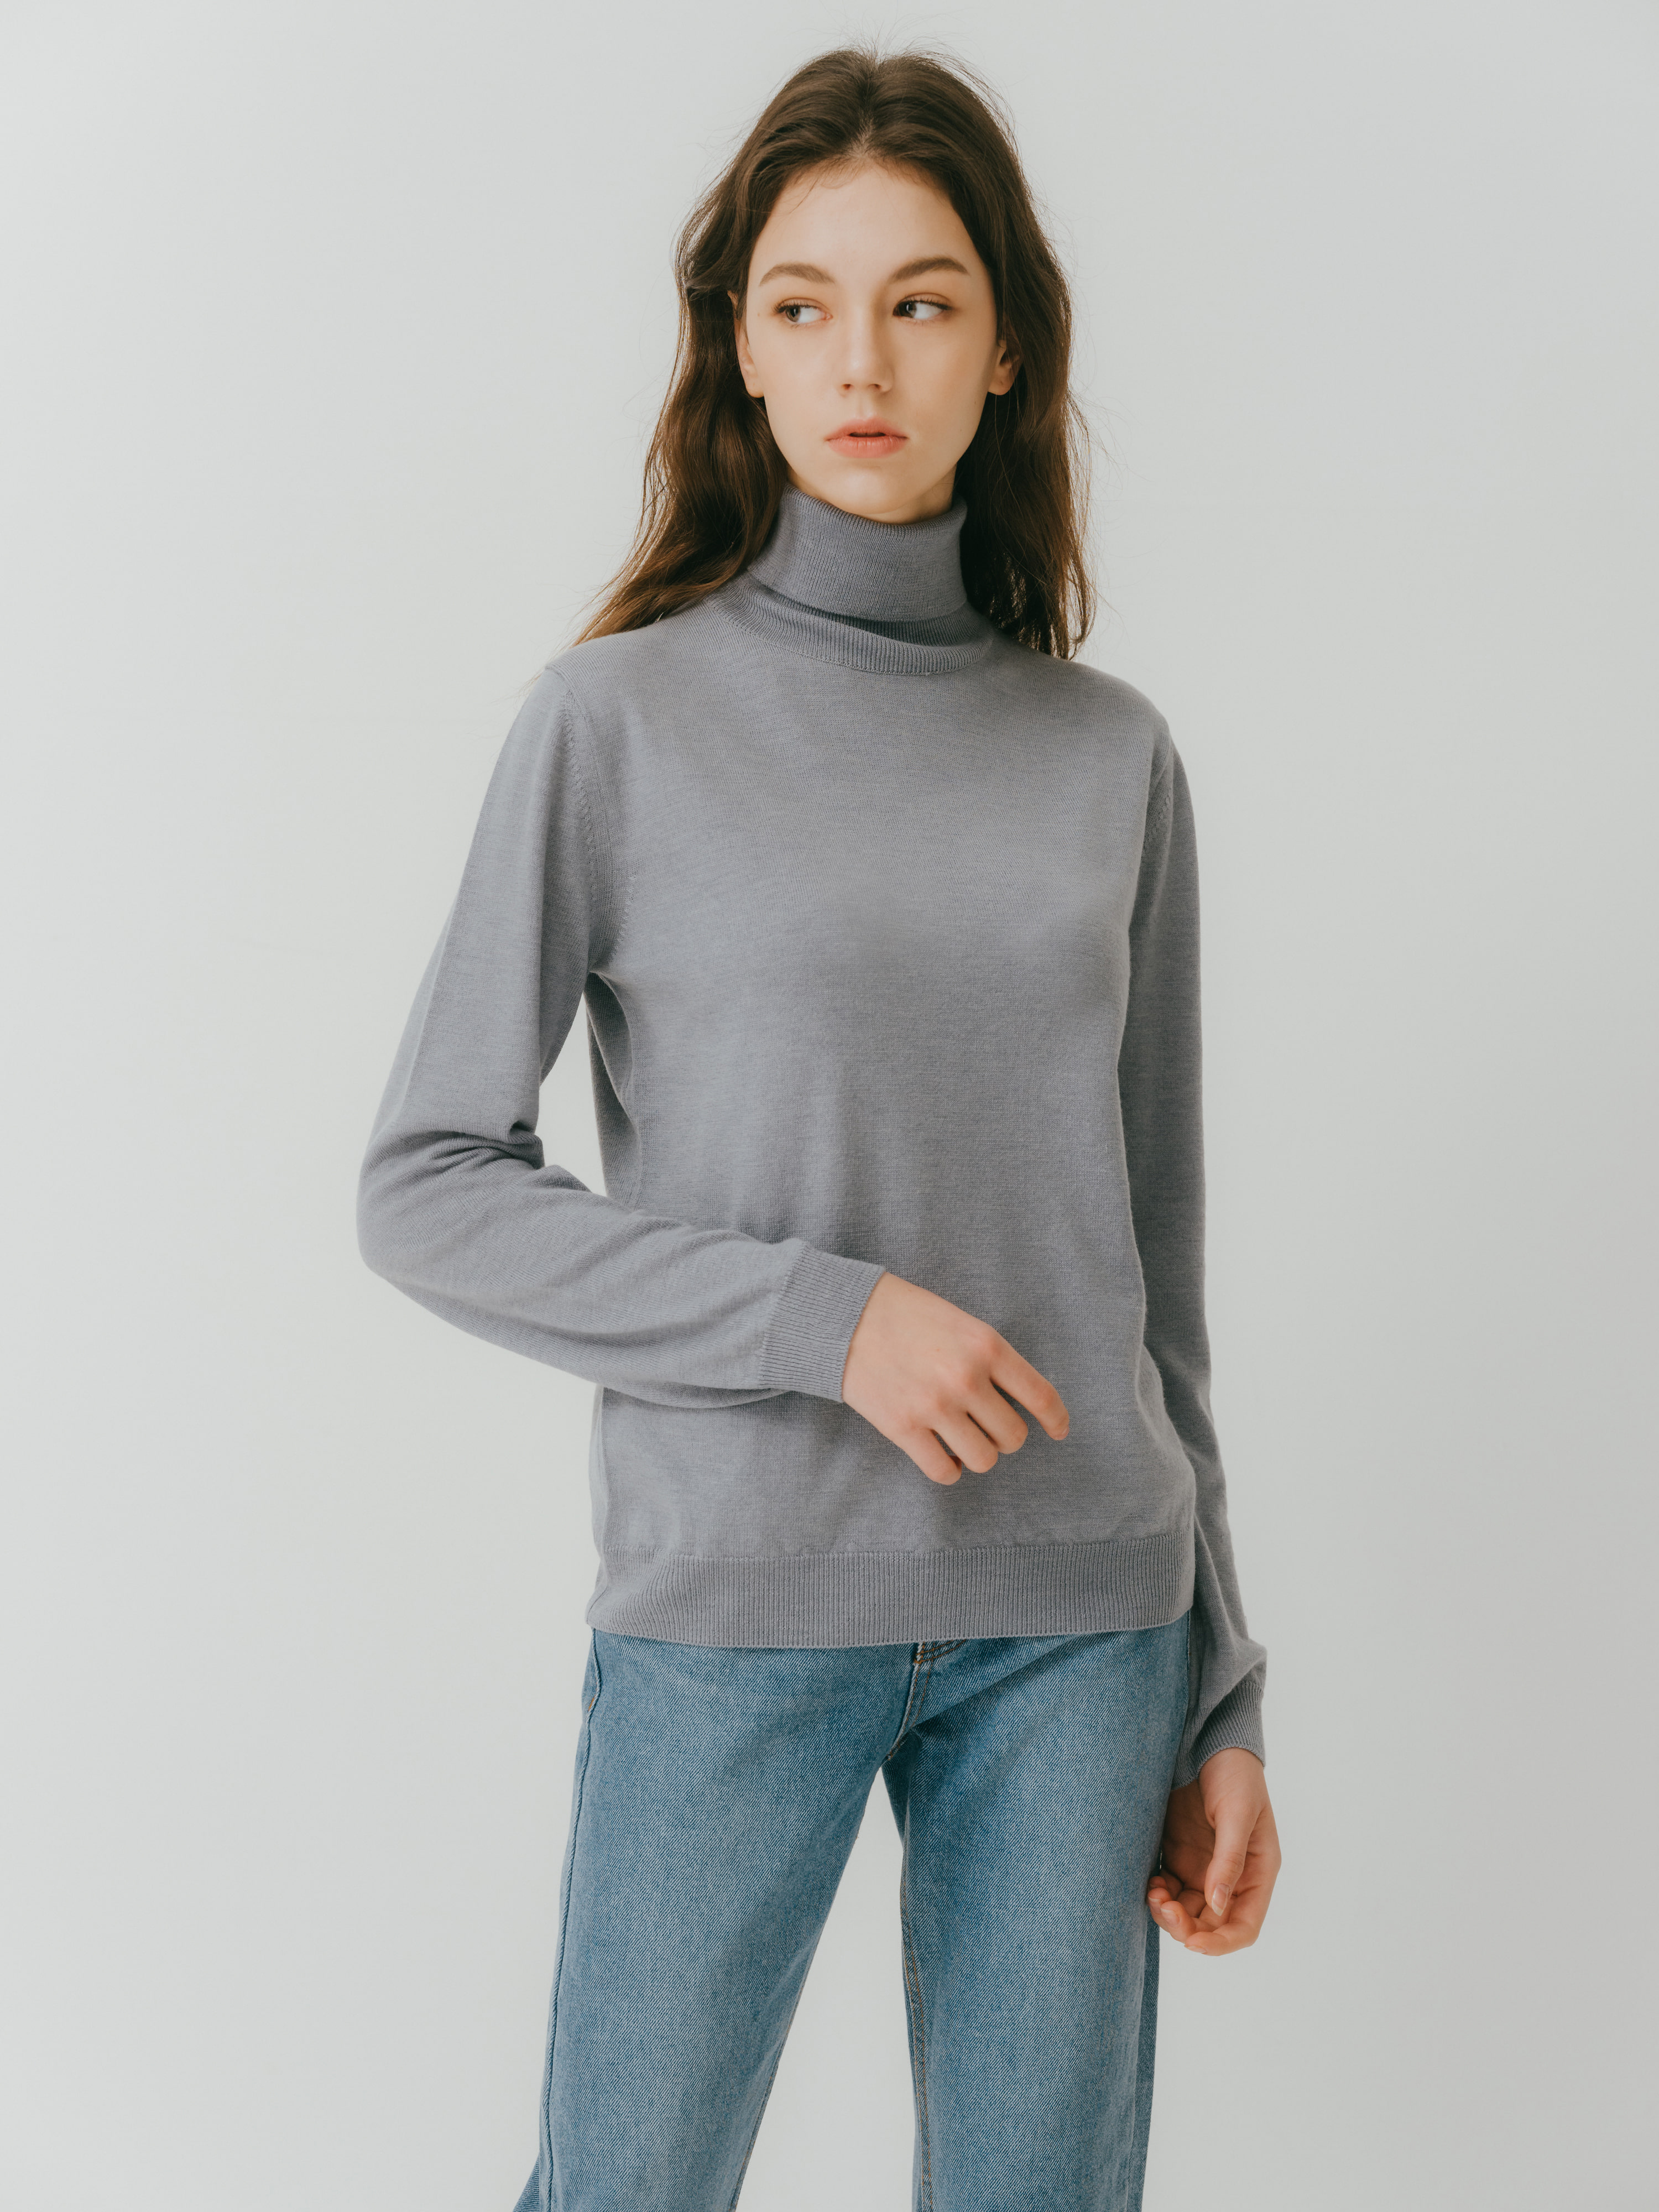 Lonio Turtle neck knit(Blue) 2차 입고